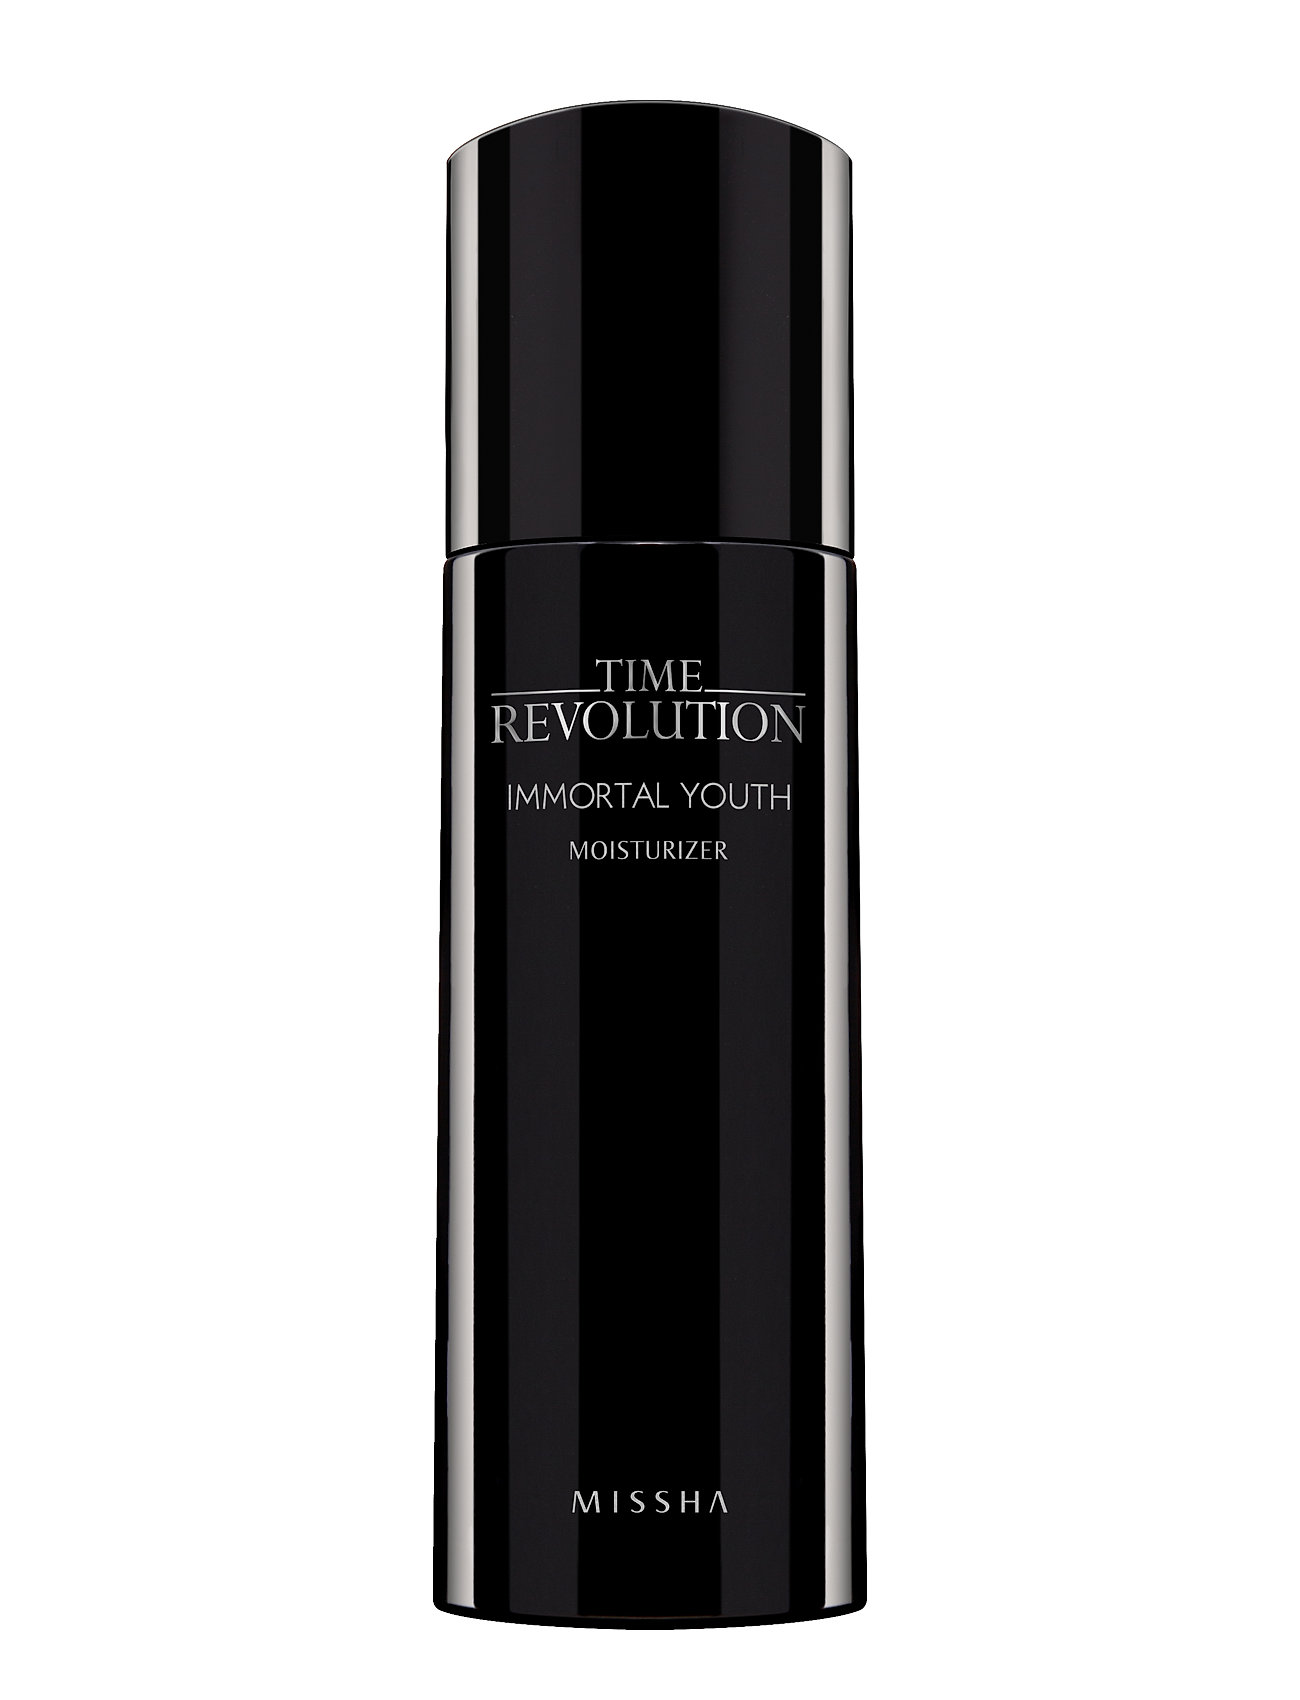 Missha Missha Time Revolution Immortal Youth  Moisturizer - CLEAR